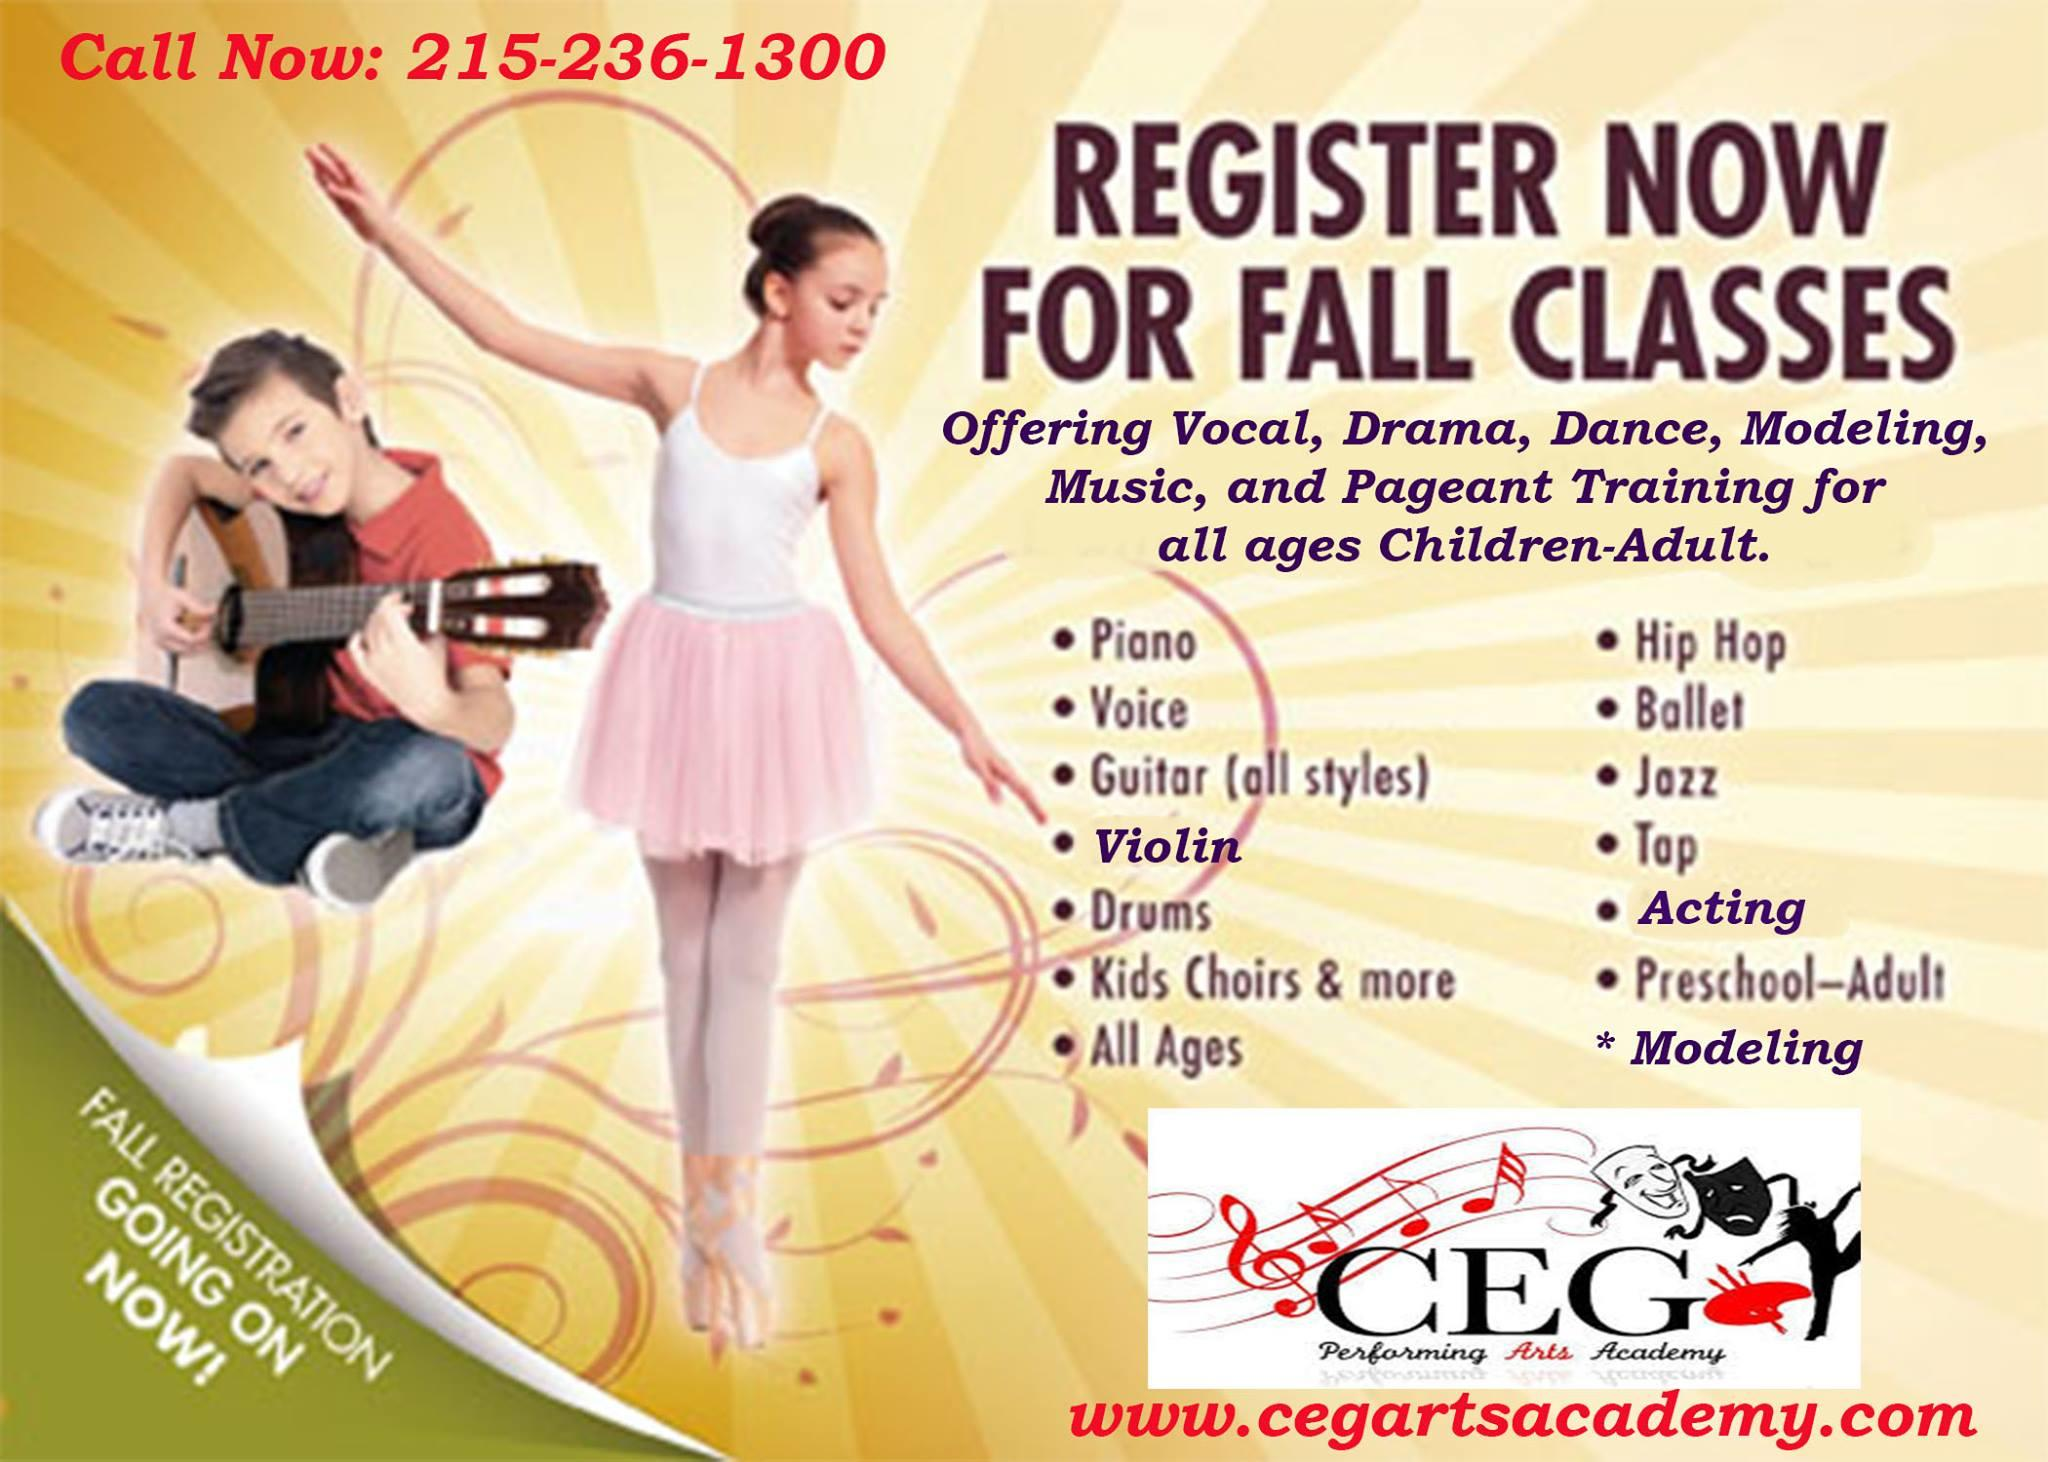 CEG Performing Arts Academy